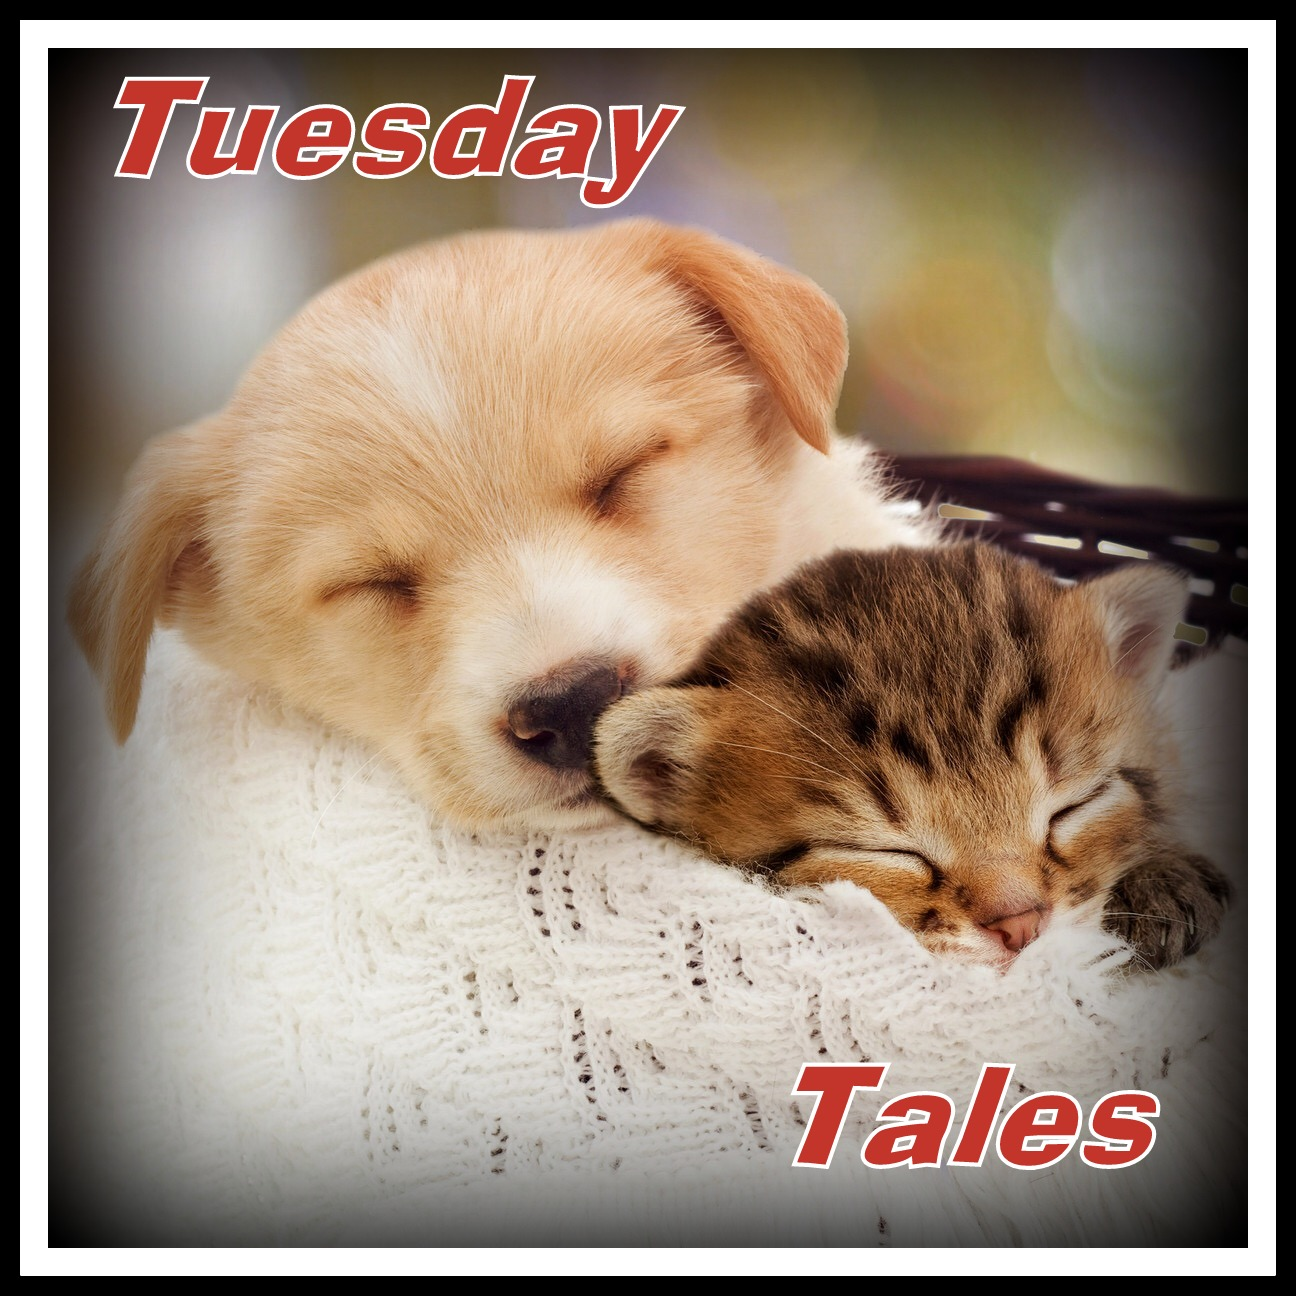 Tuesday Tails